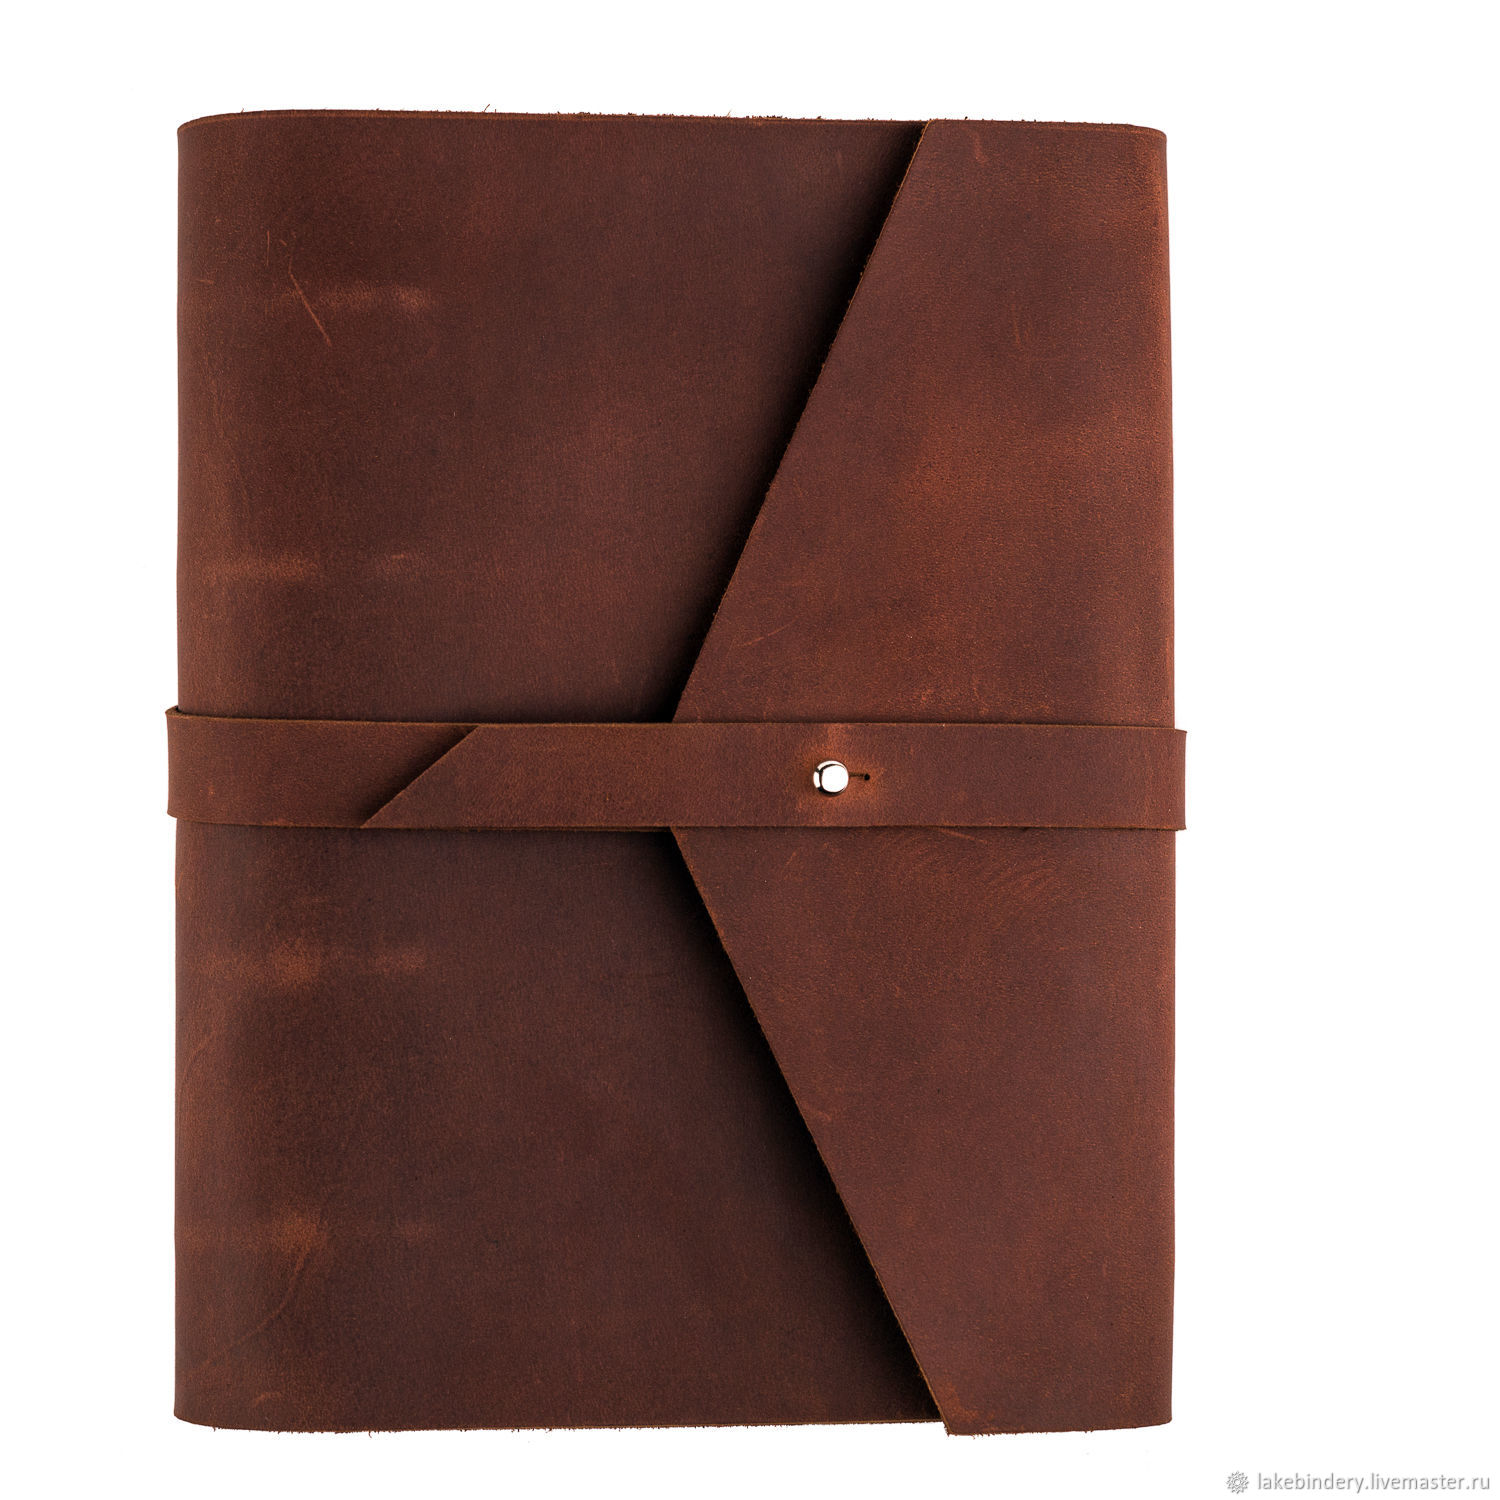 Leather notebook A5 rings with strap genuine leather Crazy Horse, Notebooks, Moscow,  Фото №1